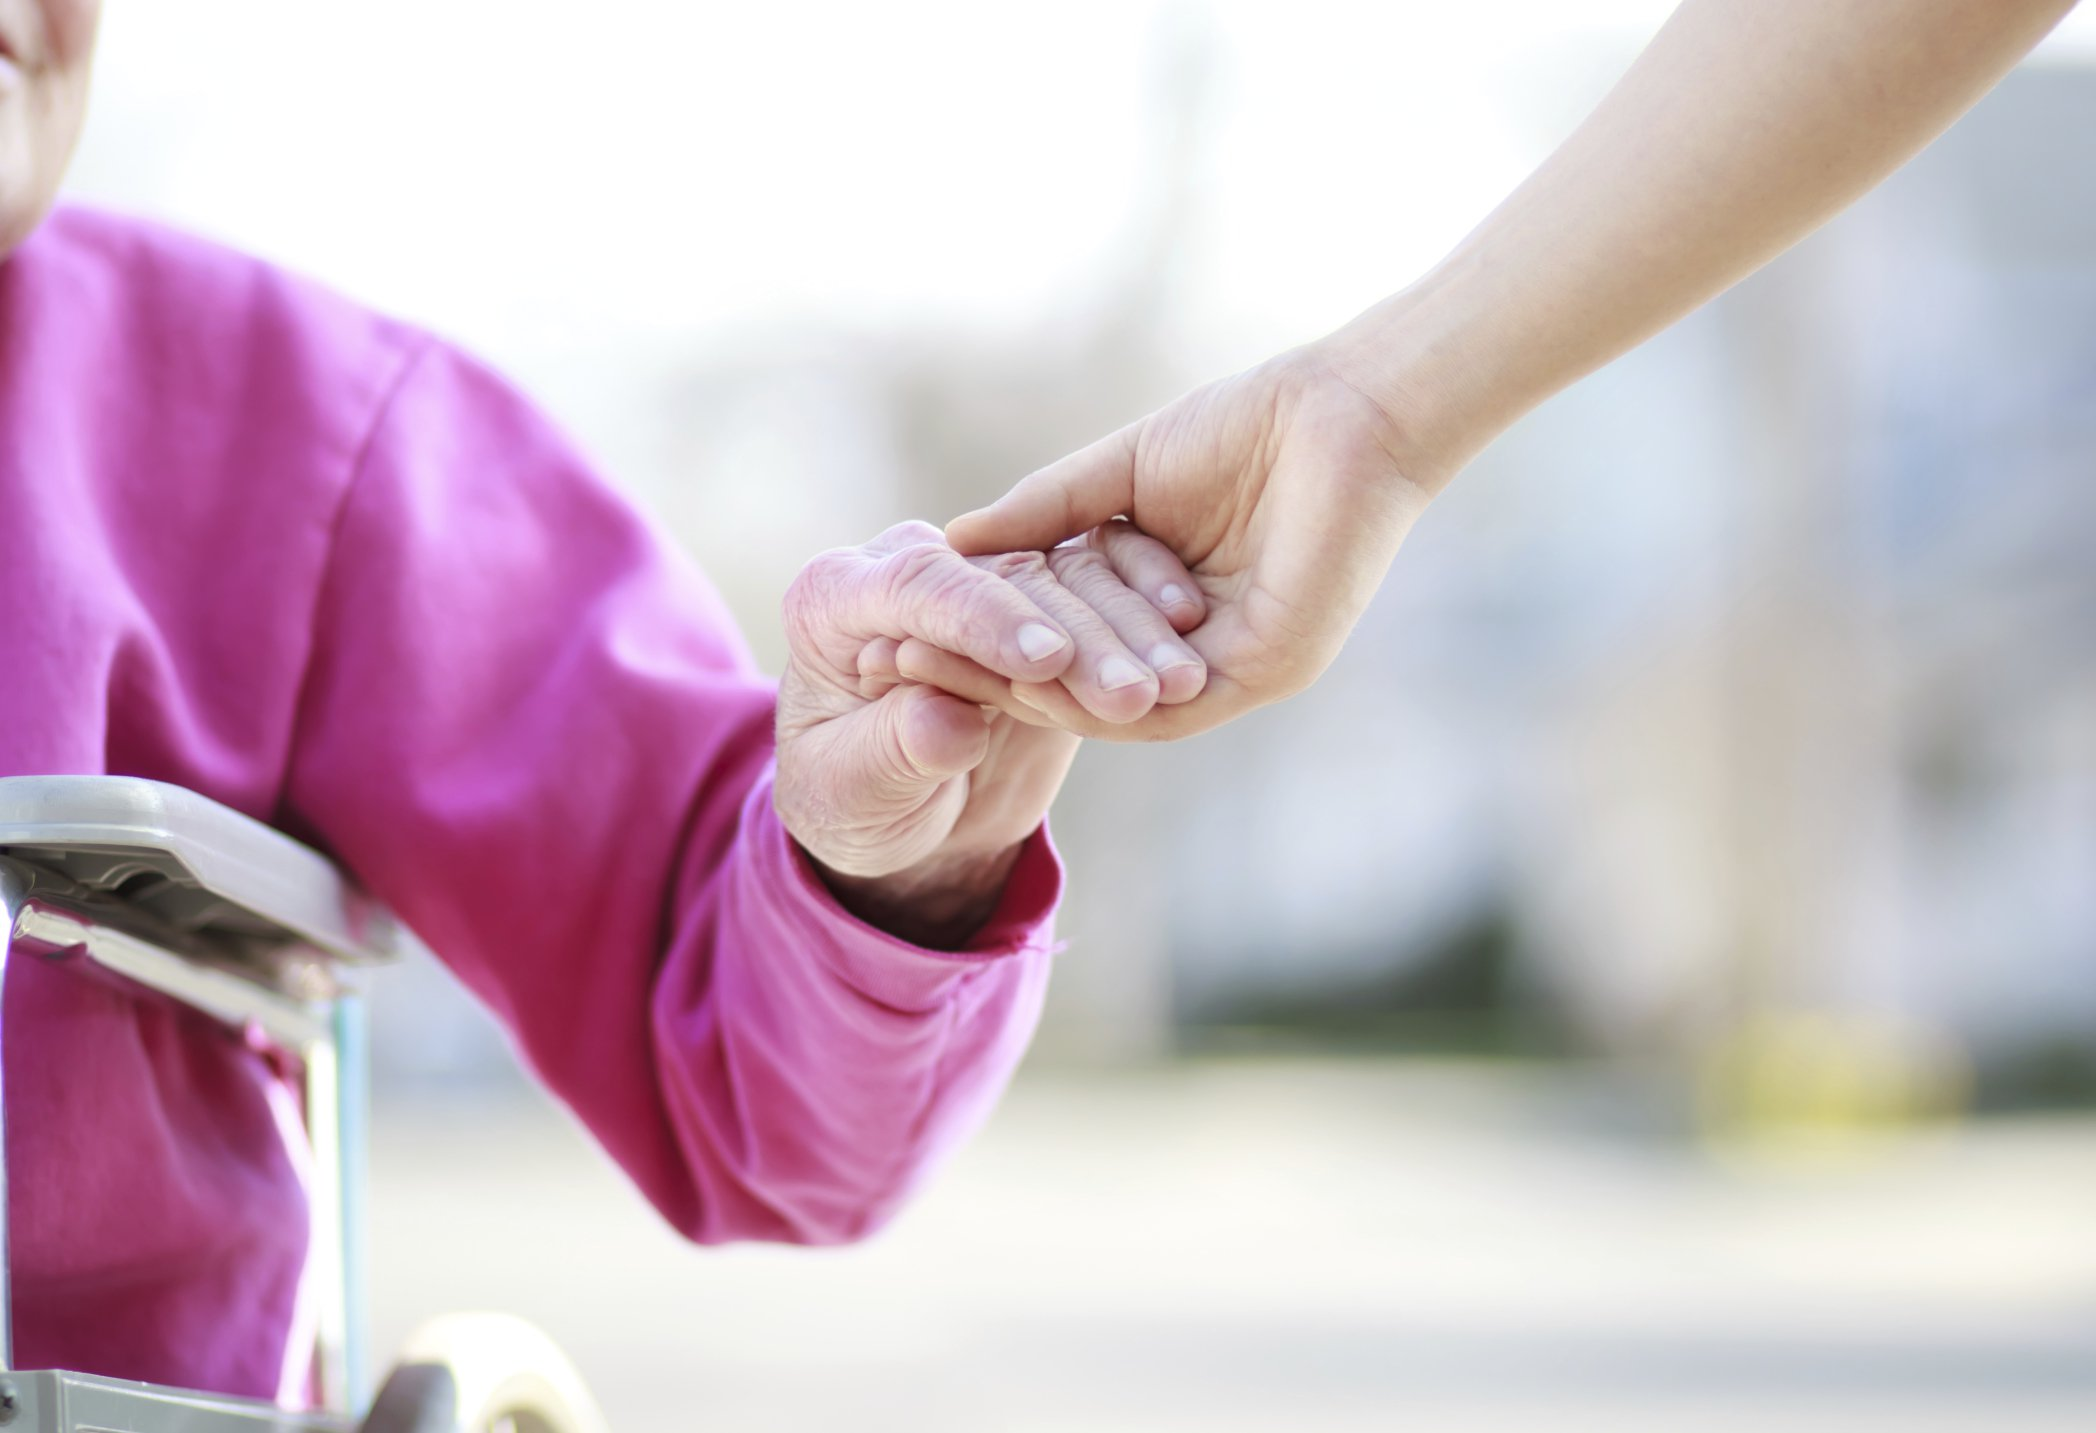 A caregiver holds hands with a patient.